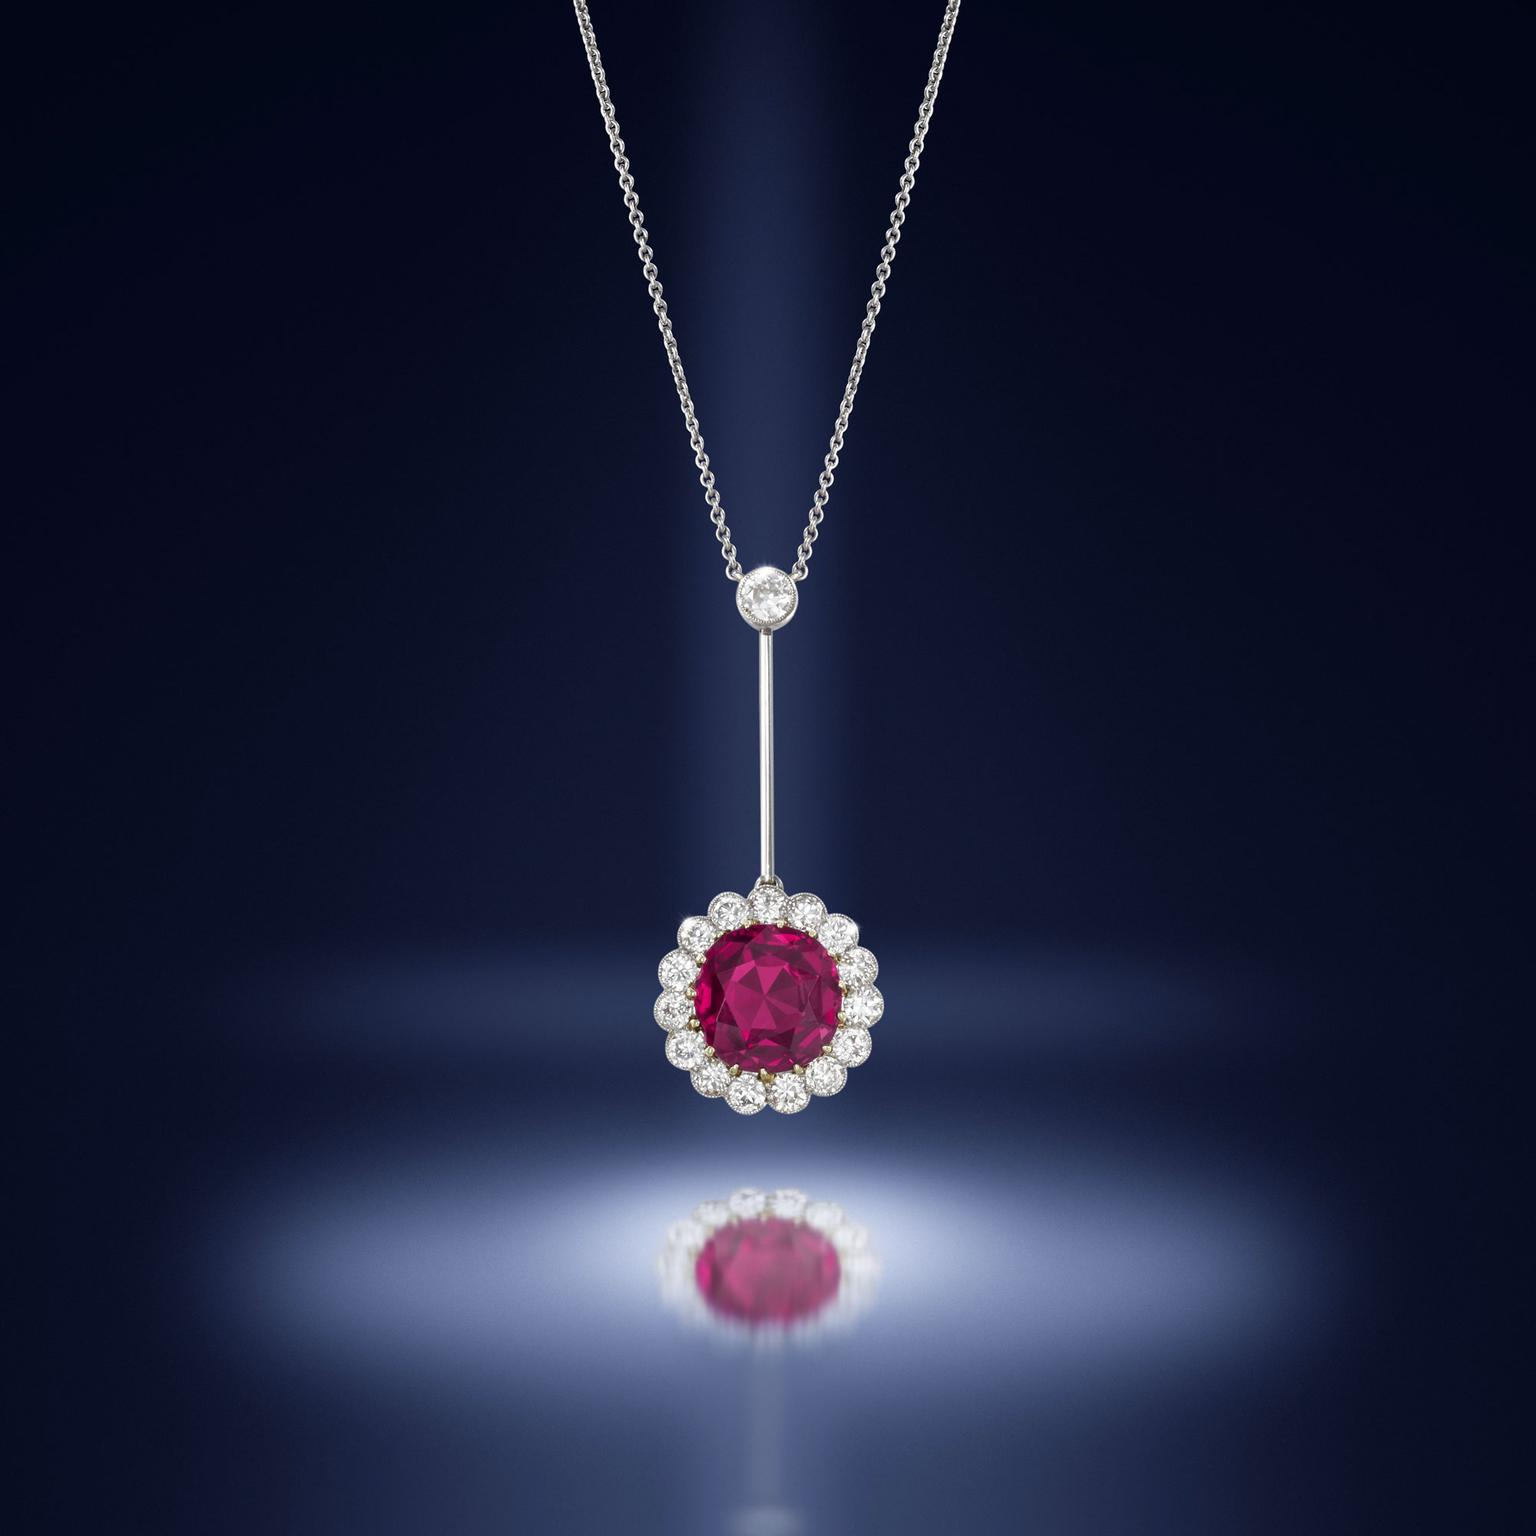 Belle Époque ruby diamond pendant